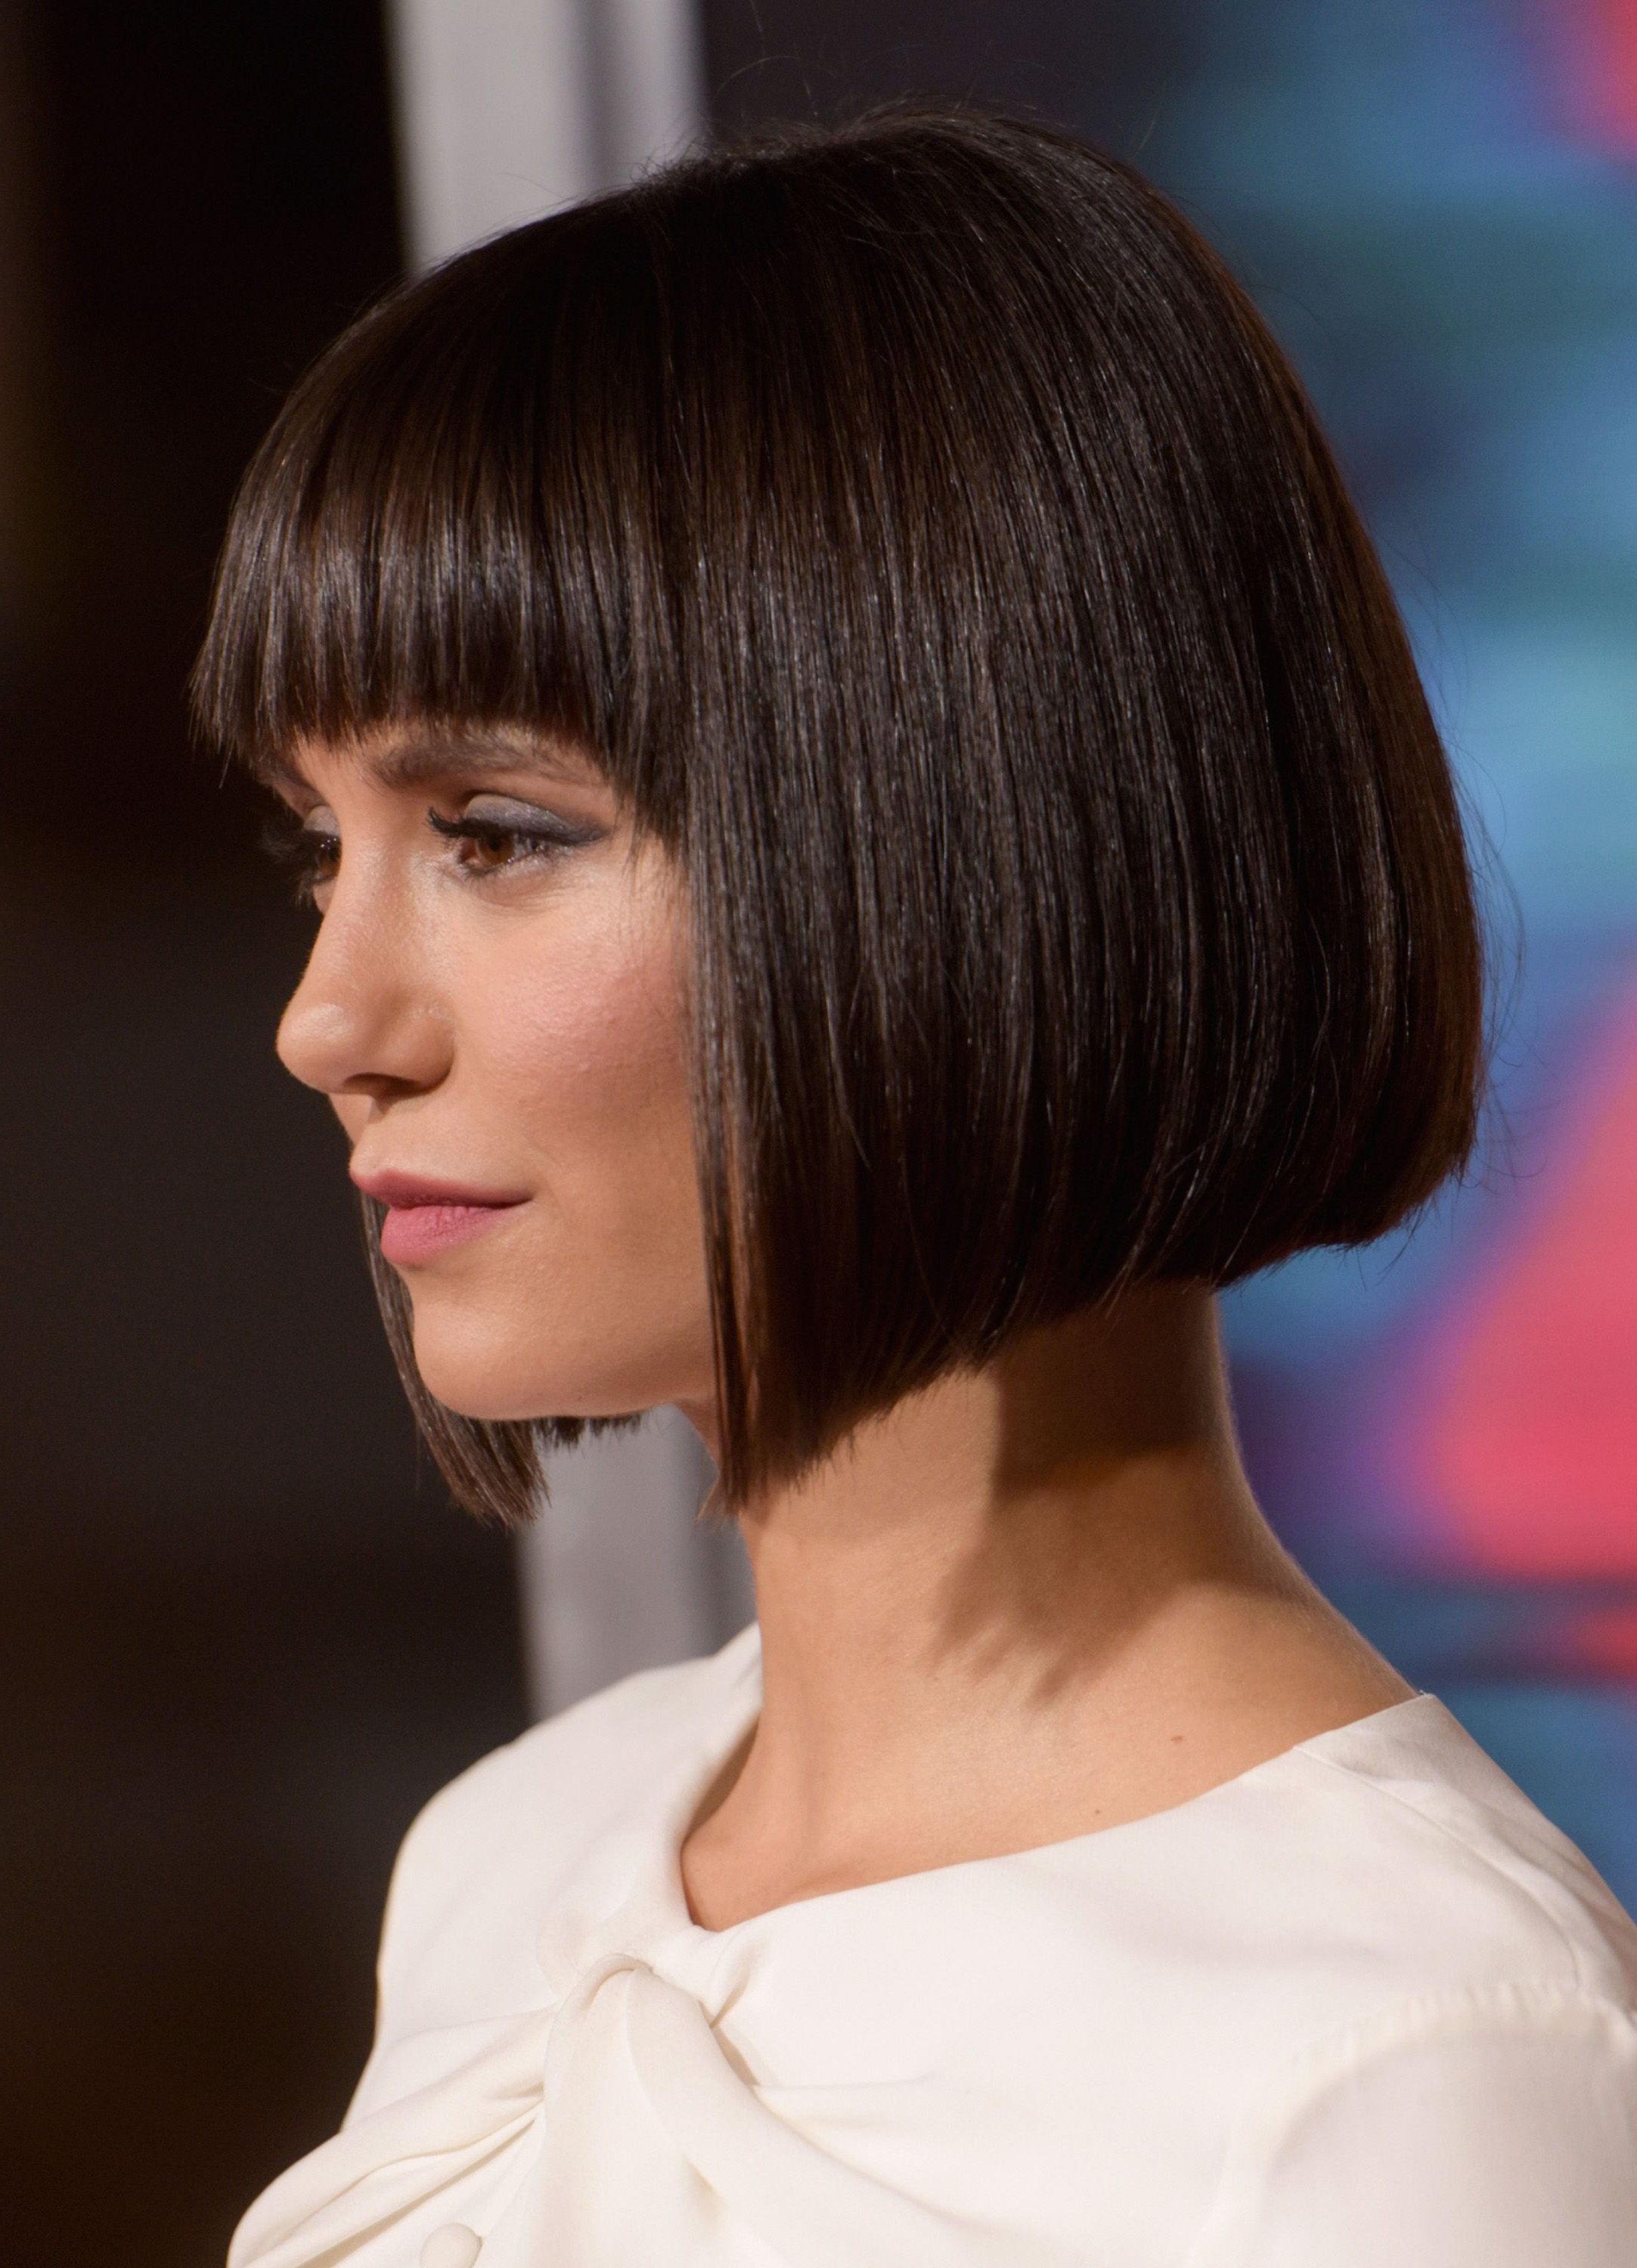 50 Best Bob Styles Of 2018 – Bob Haircuts & Hairstyles For Women Pertaining To Most Popular Brunette Feathered Bob Hairstyles With Piece Y Bangs (View 5 of 20)